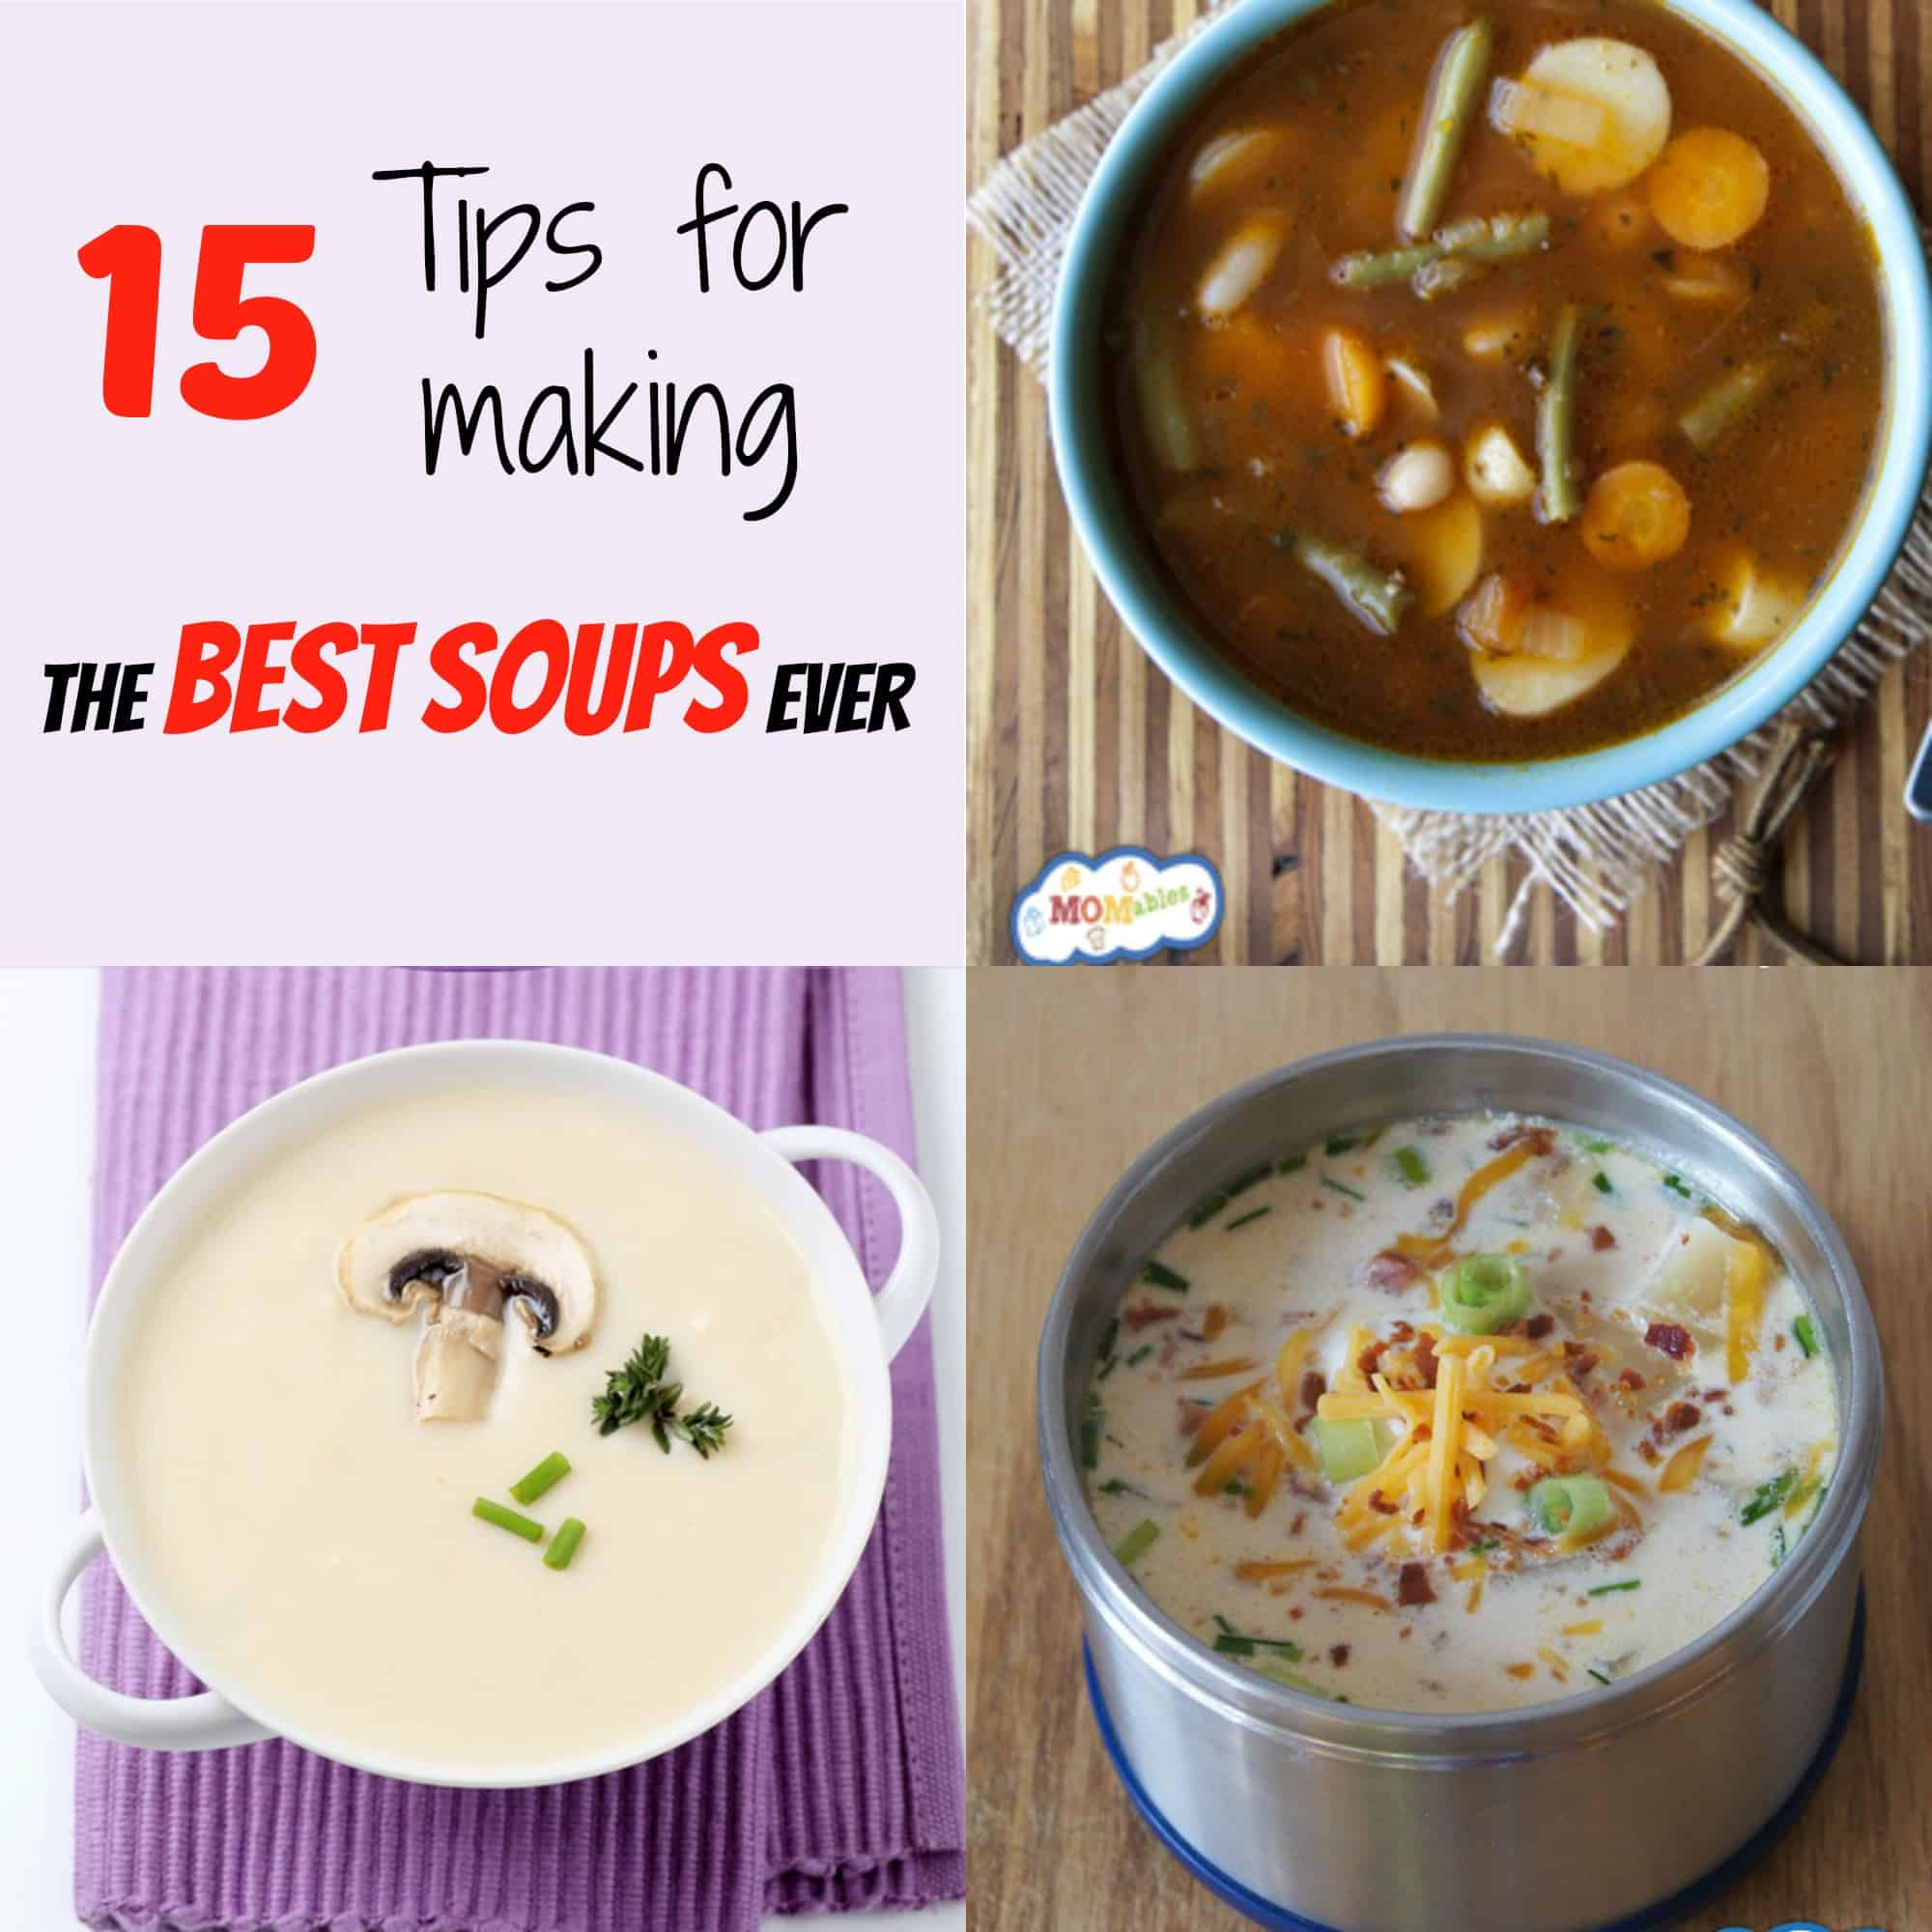 15 tips for making the best soup ever